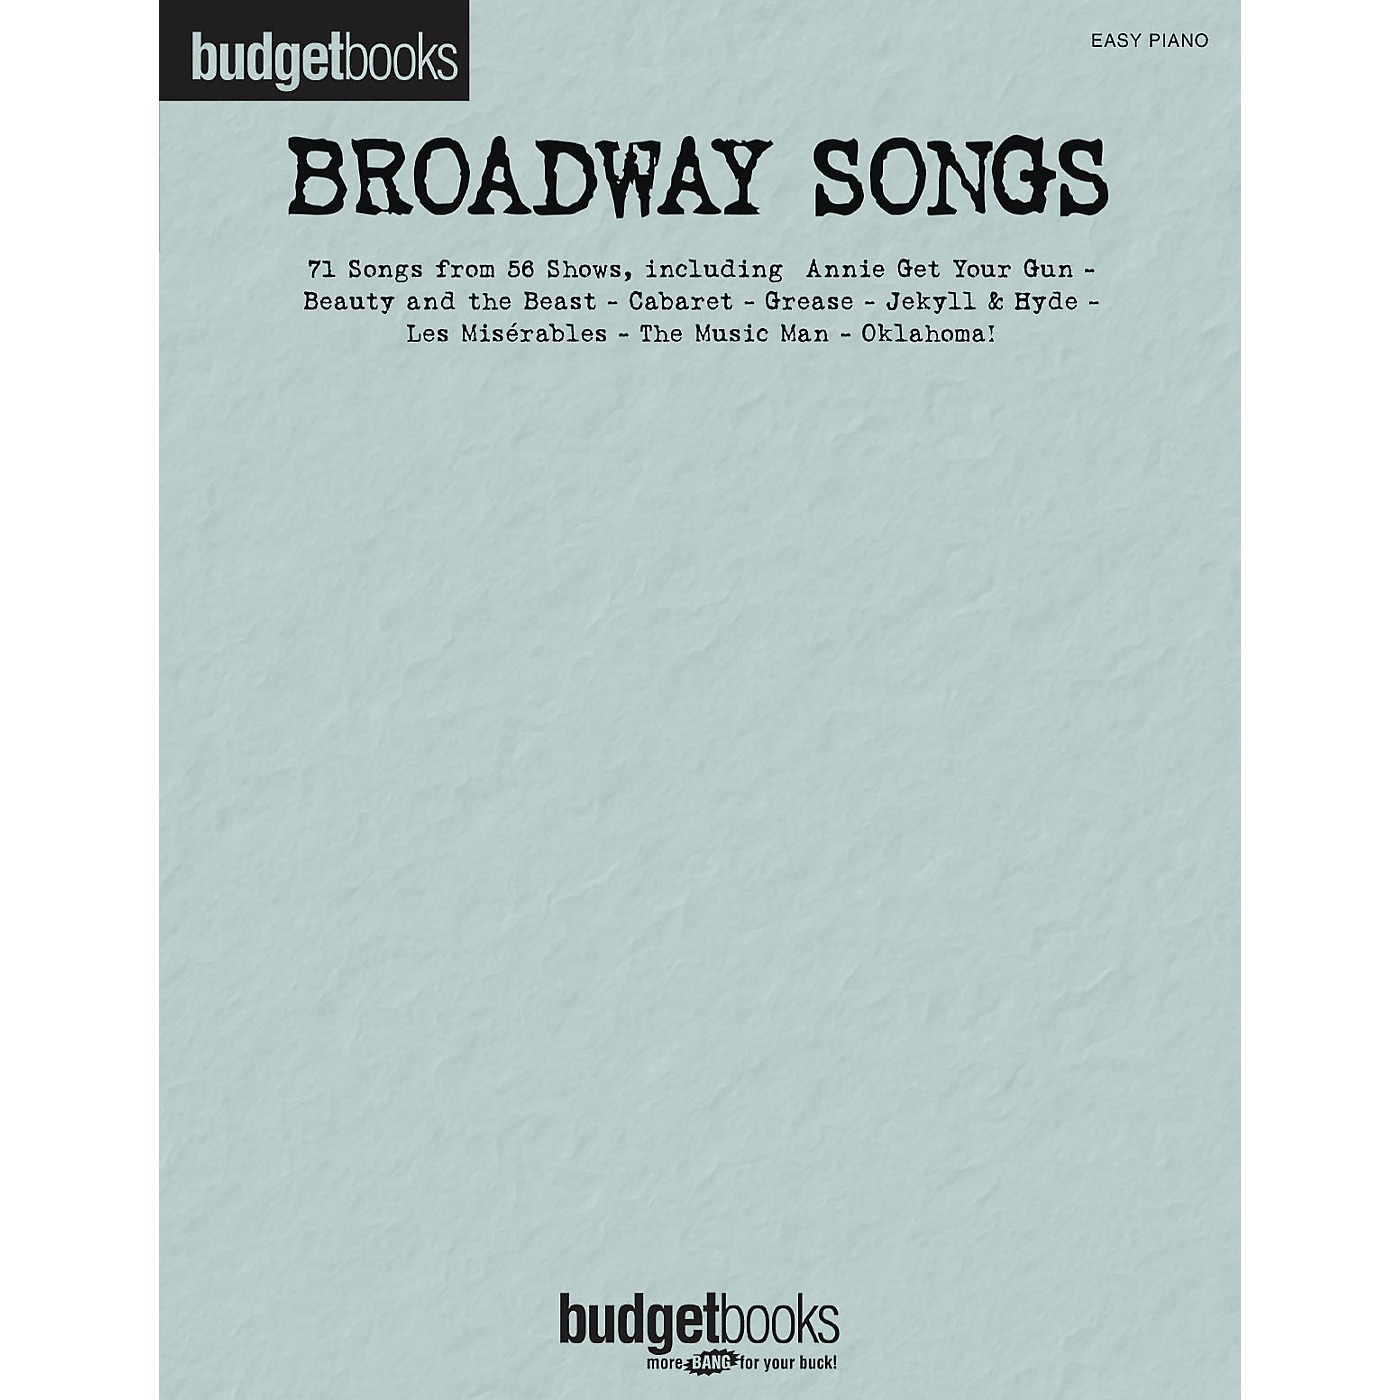 Hal Leonard Broadway Songs - Budget Book Series For Easy Piano thumbnail